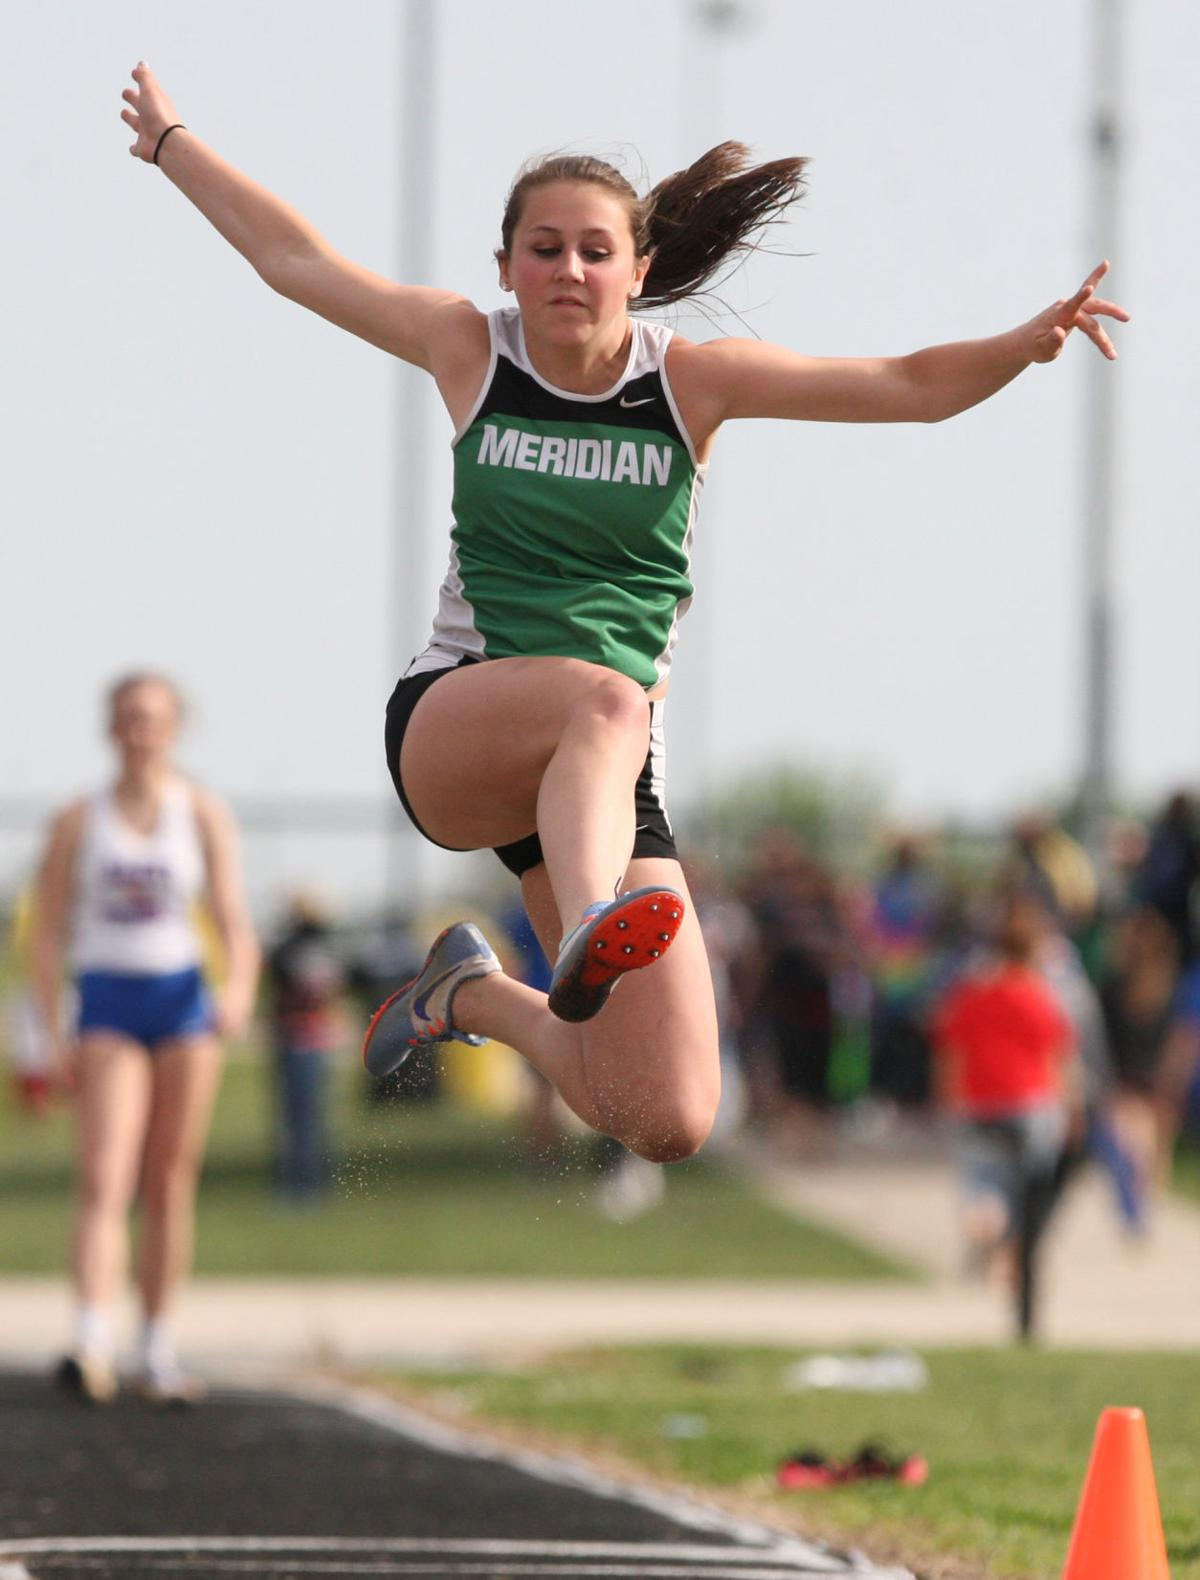 PHOTOS: Track & Field at Meridian High School | Photo